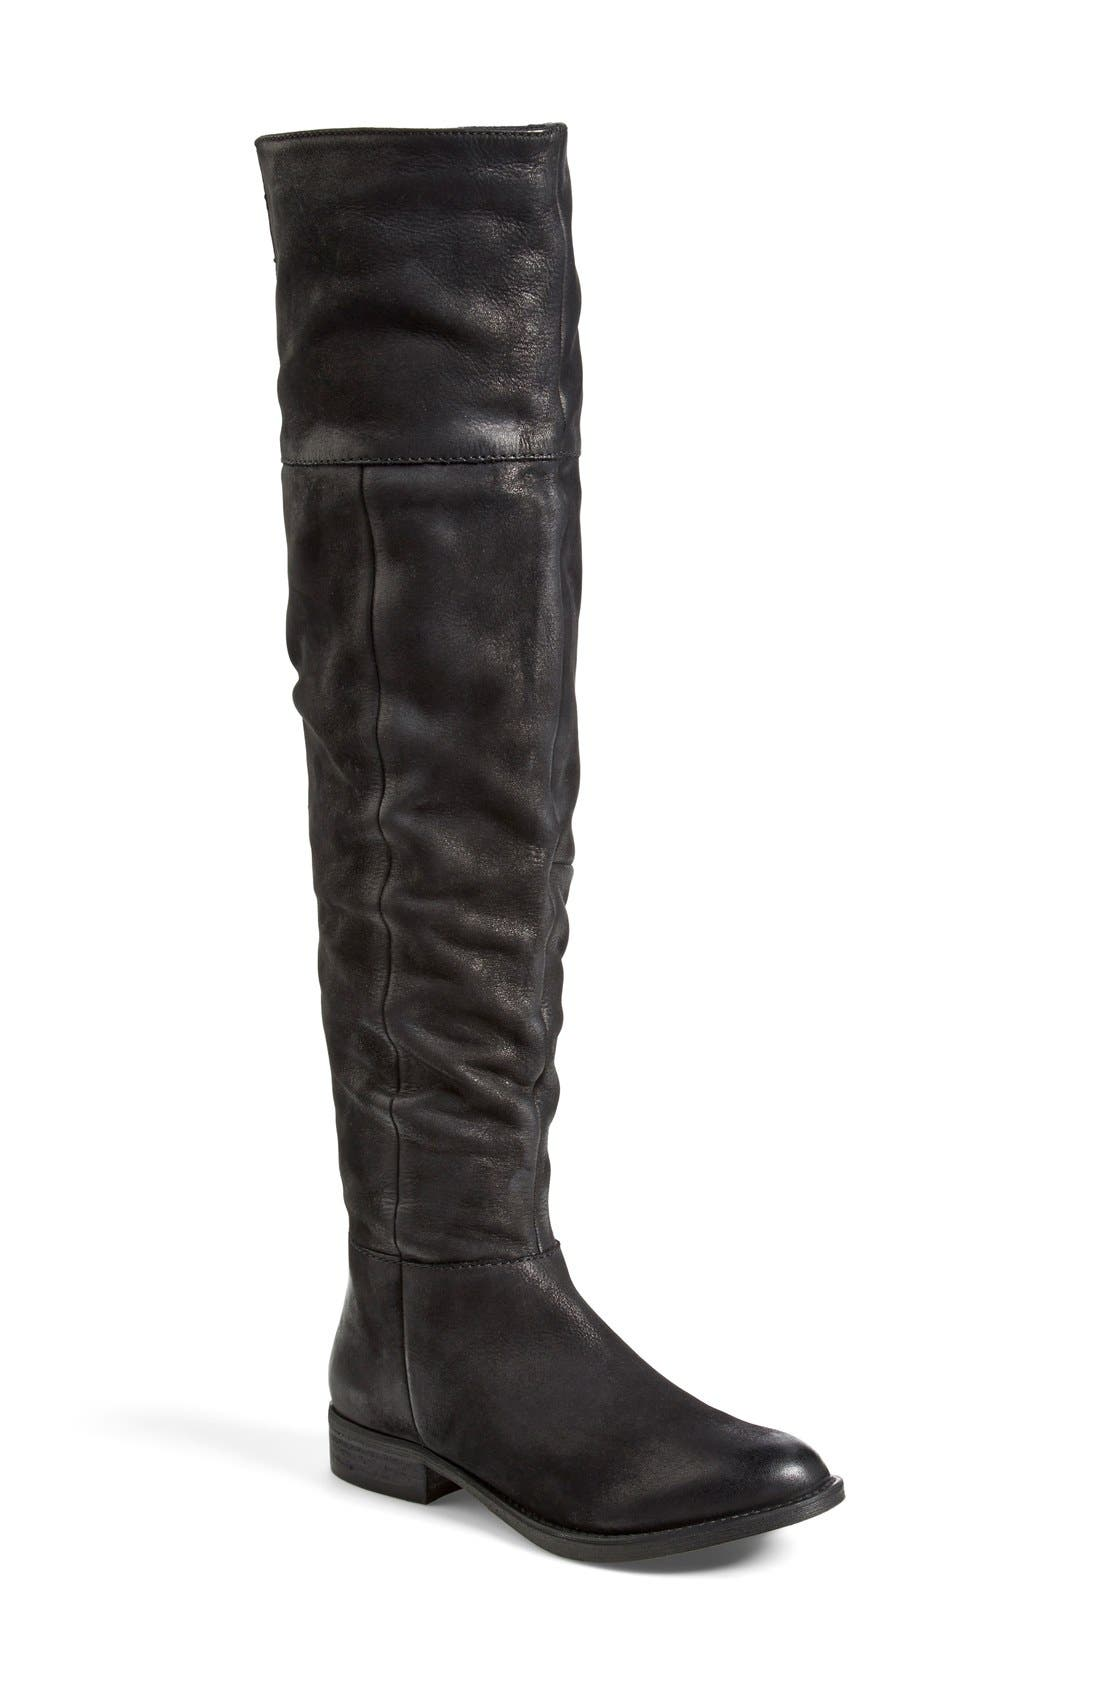 'Heisnbrg' Leather Over the Knee Boot,                         Main,                         color, 001